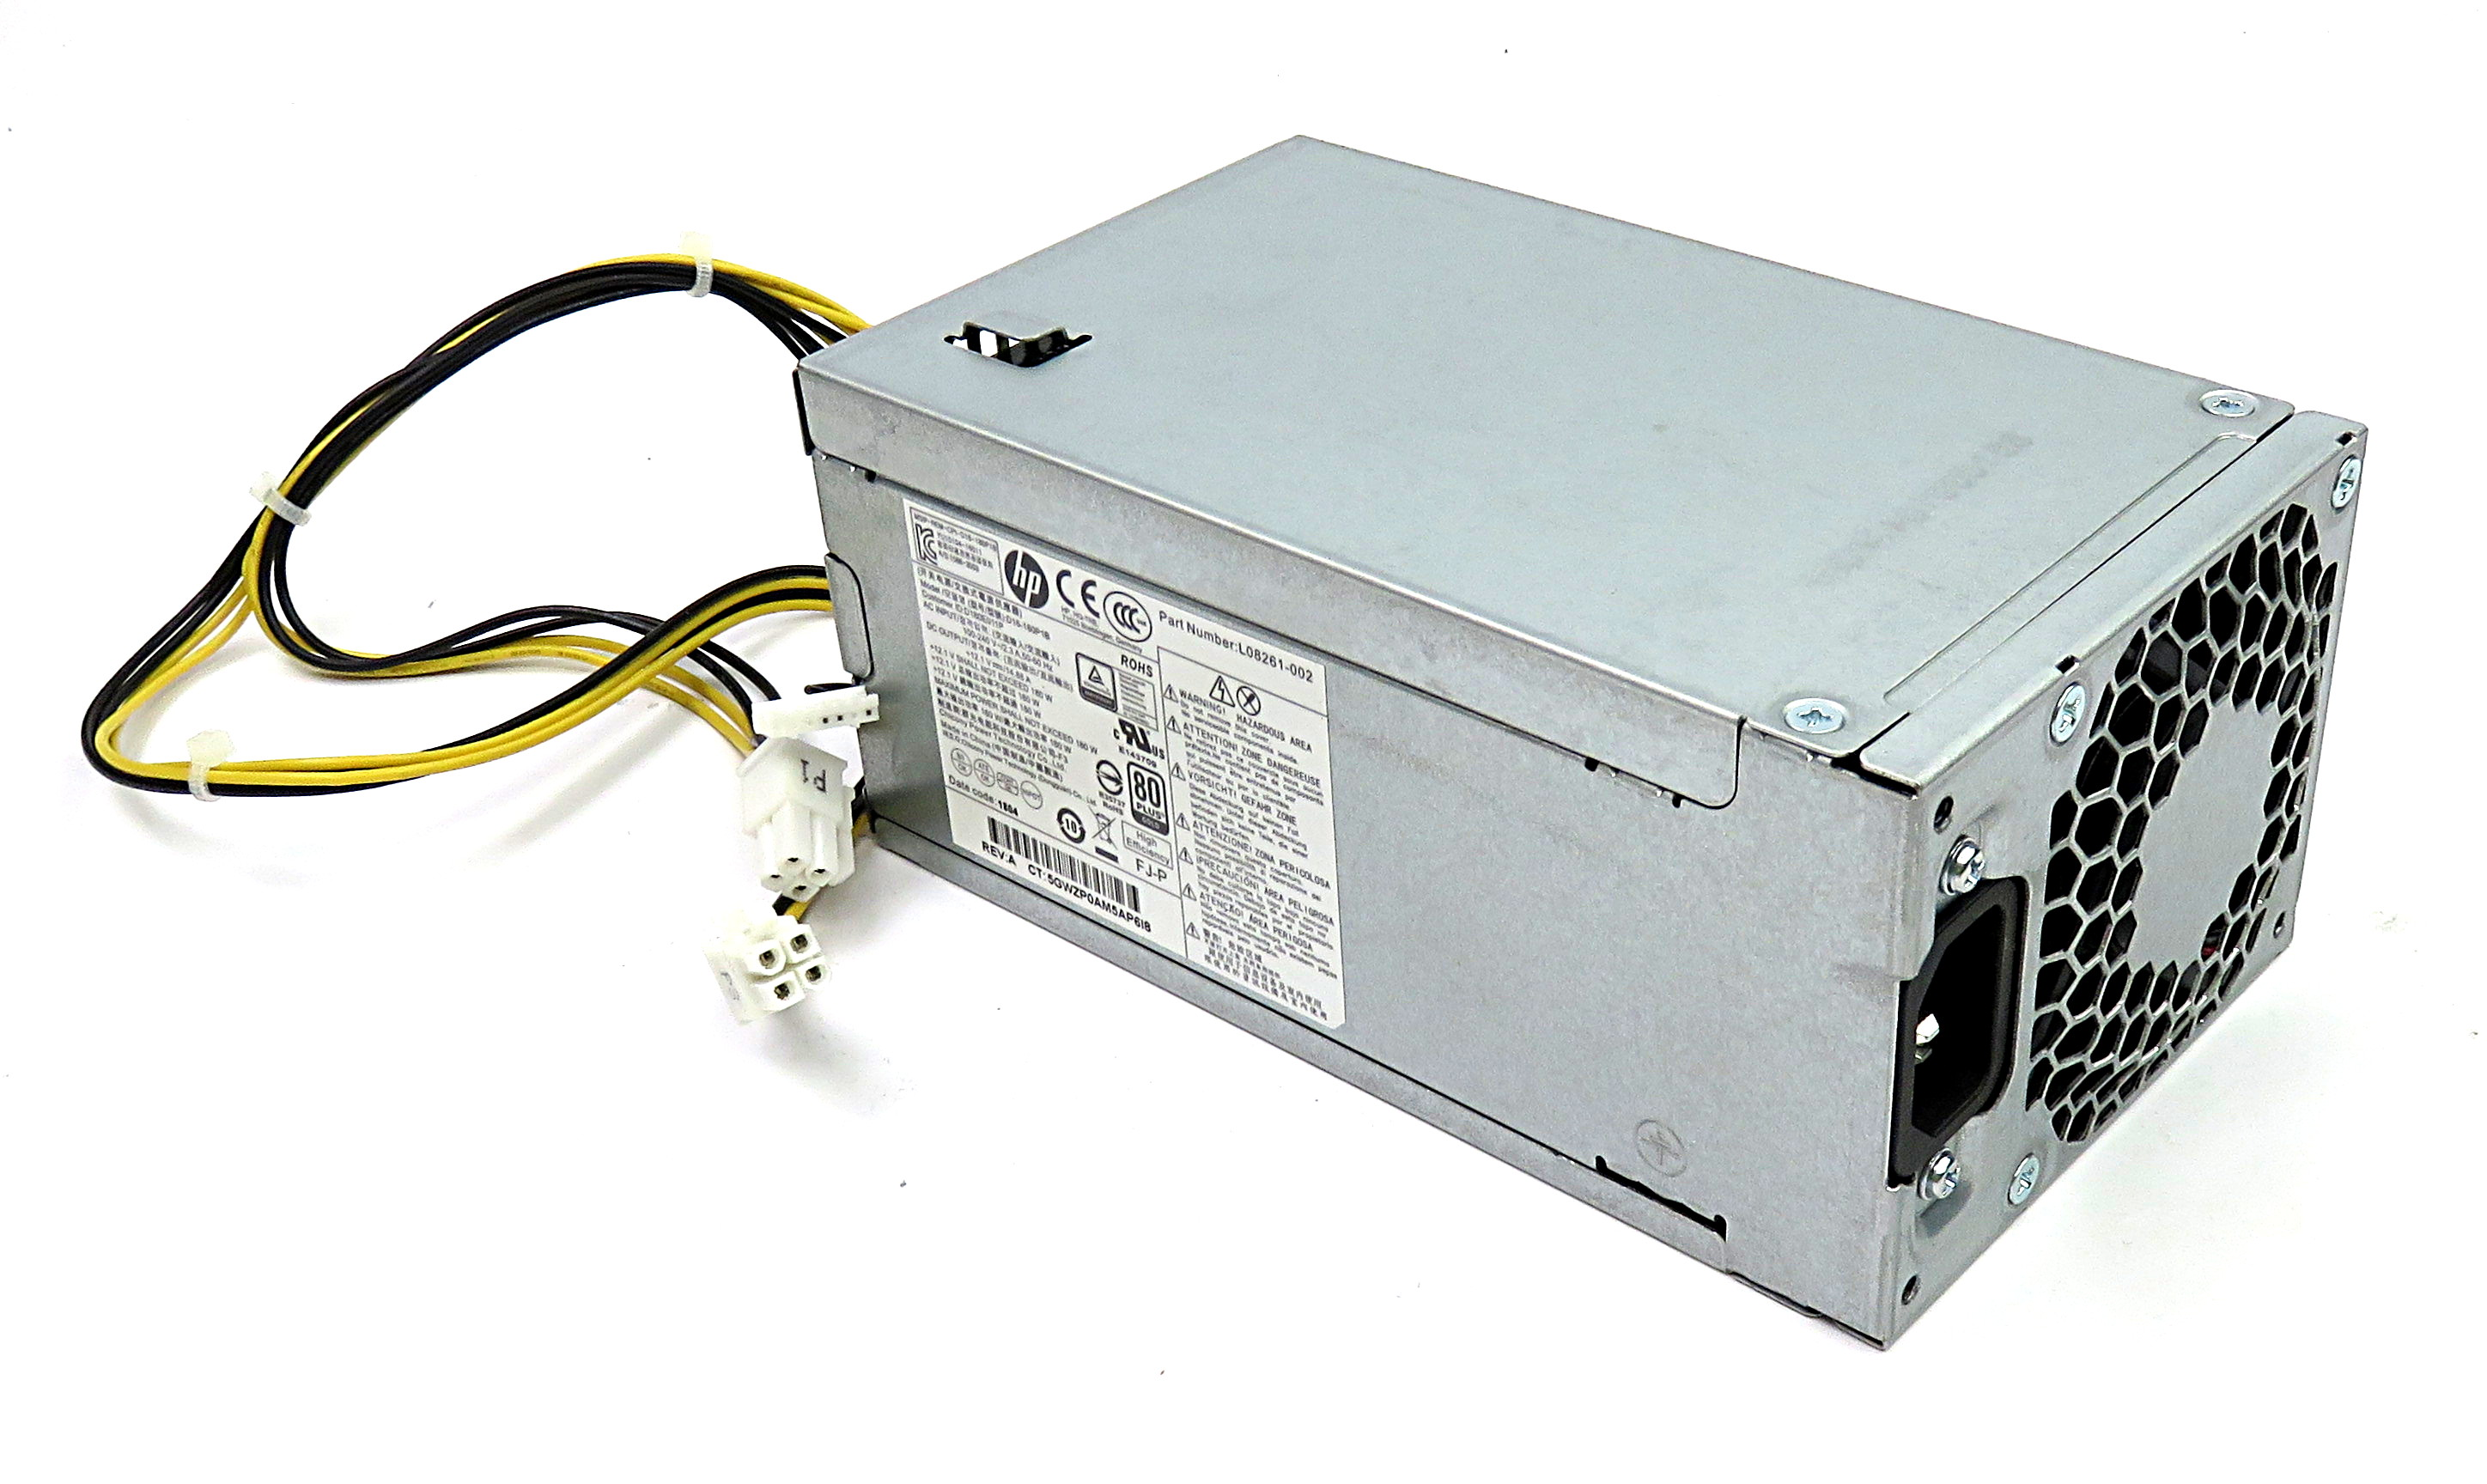 HP L08261-002 180W Power Supply D16-180P1B f/ Pavilion 590-p0100na SFF PC